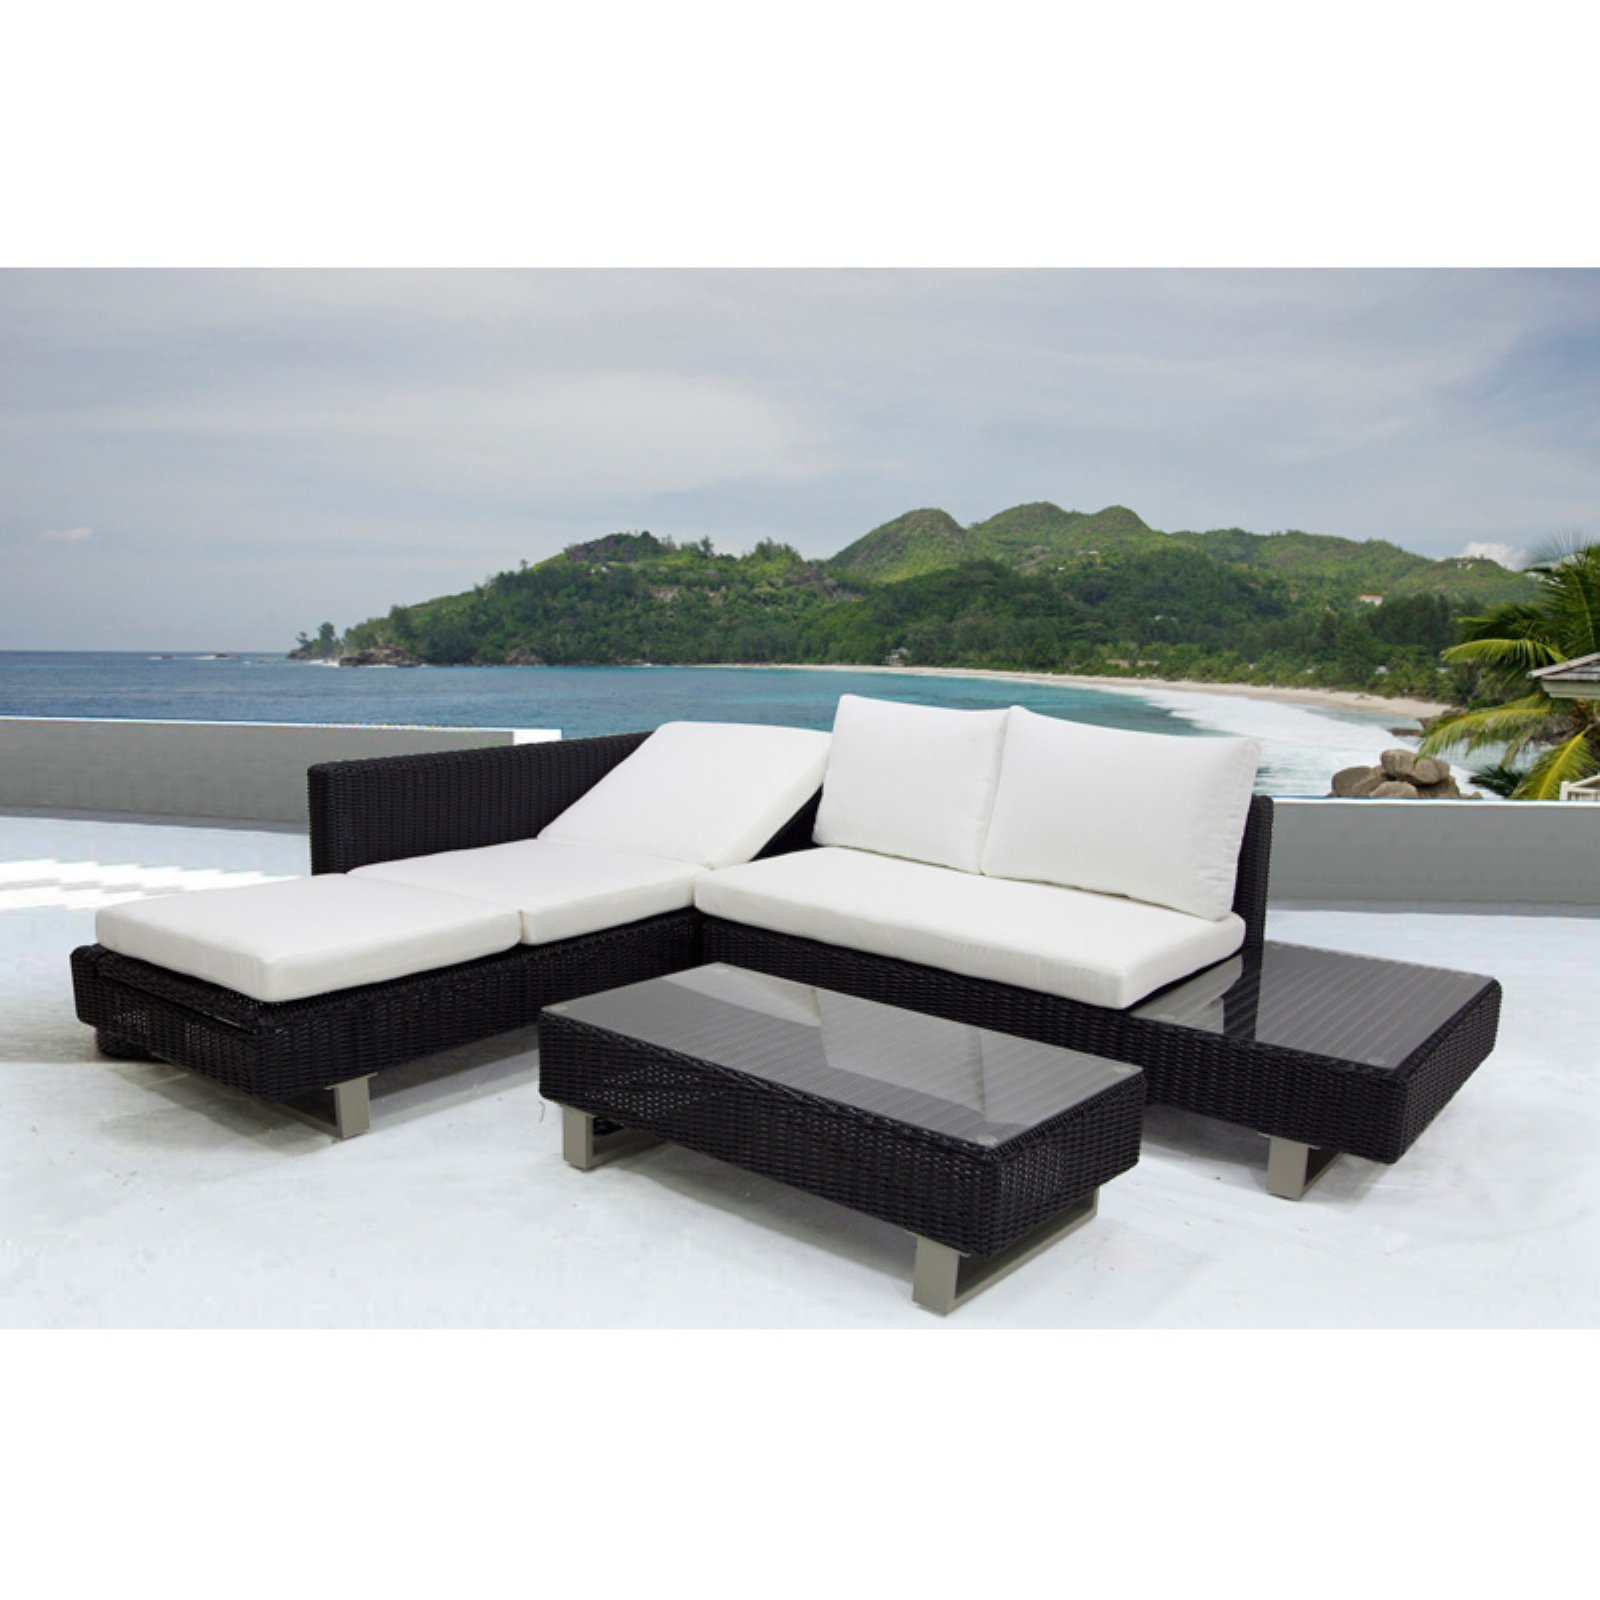 3 Piece Outdoor Sectional Sofa Set 20 16 Sayedbrothers Nl